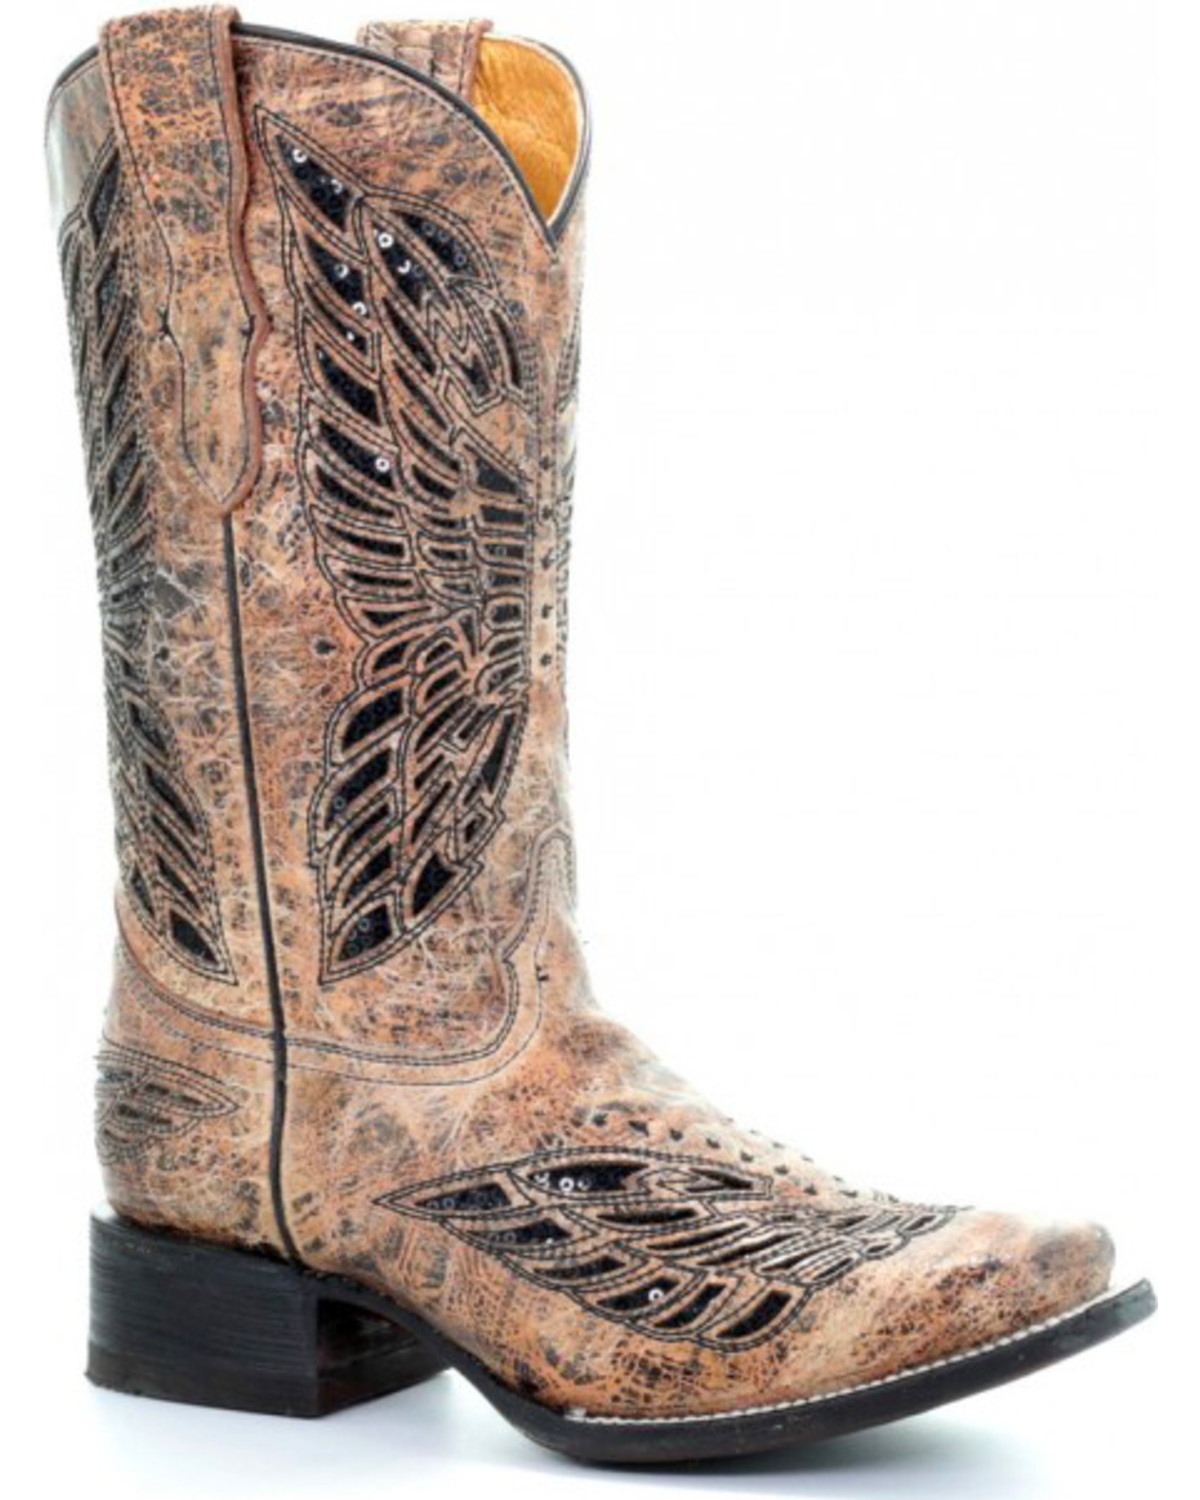 c5e40bf04 Corral Youth Girls  Tan Butterfly Inlay Boots - Square Toe